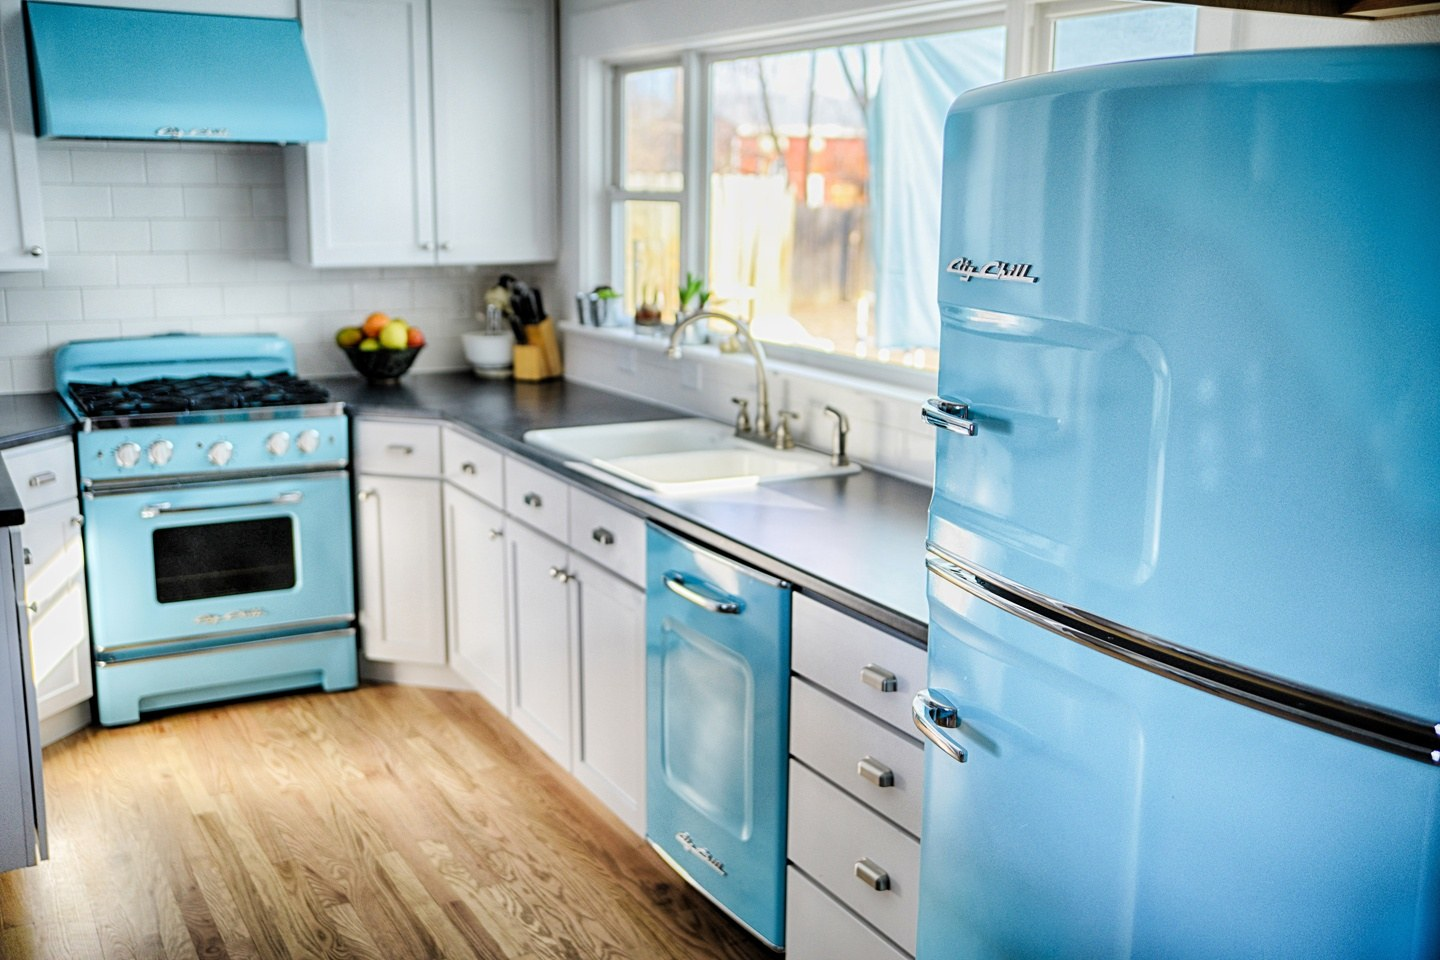 How To Design A Retro Kitchen Quora - Retro-kitchen-design-you-never-seen-before